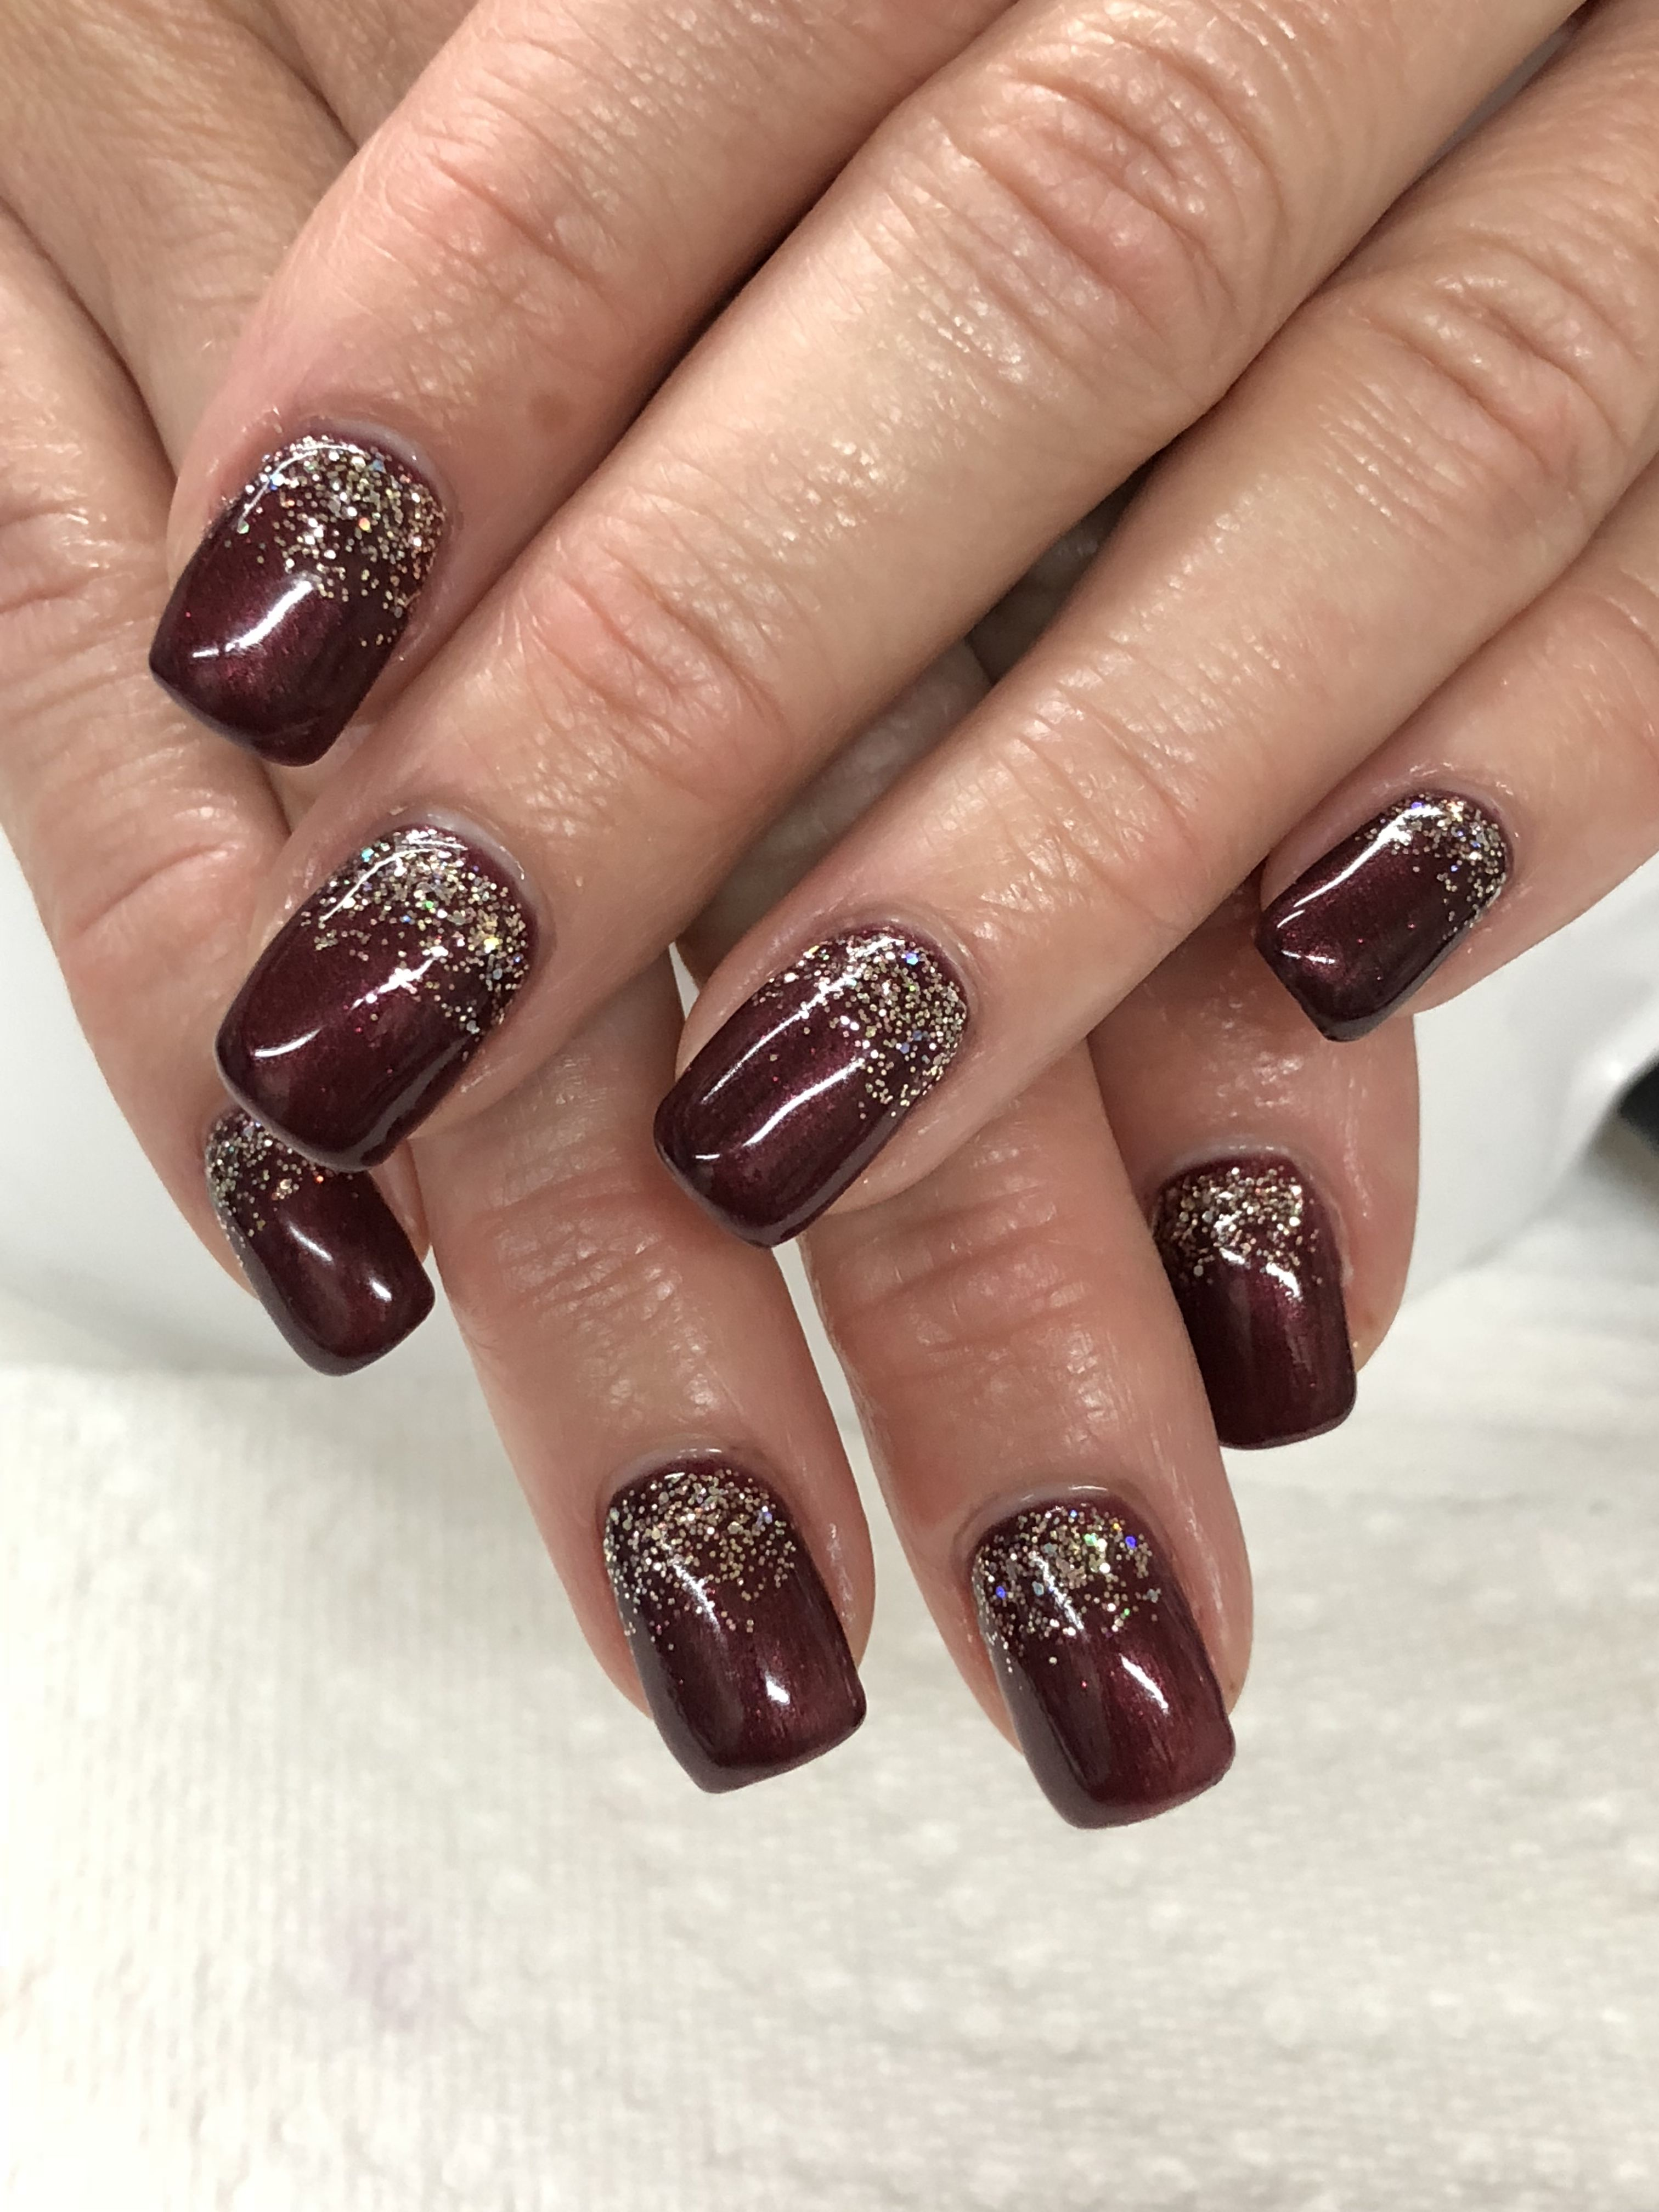 Mahogany Fall Glitter Ombre Gel Nails Light Elegance Tell Tale Heart Champagne Champagne Nails Ombre Gel Nails Gel Nail Light